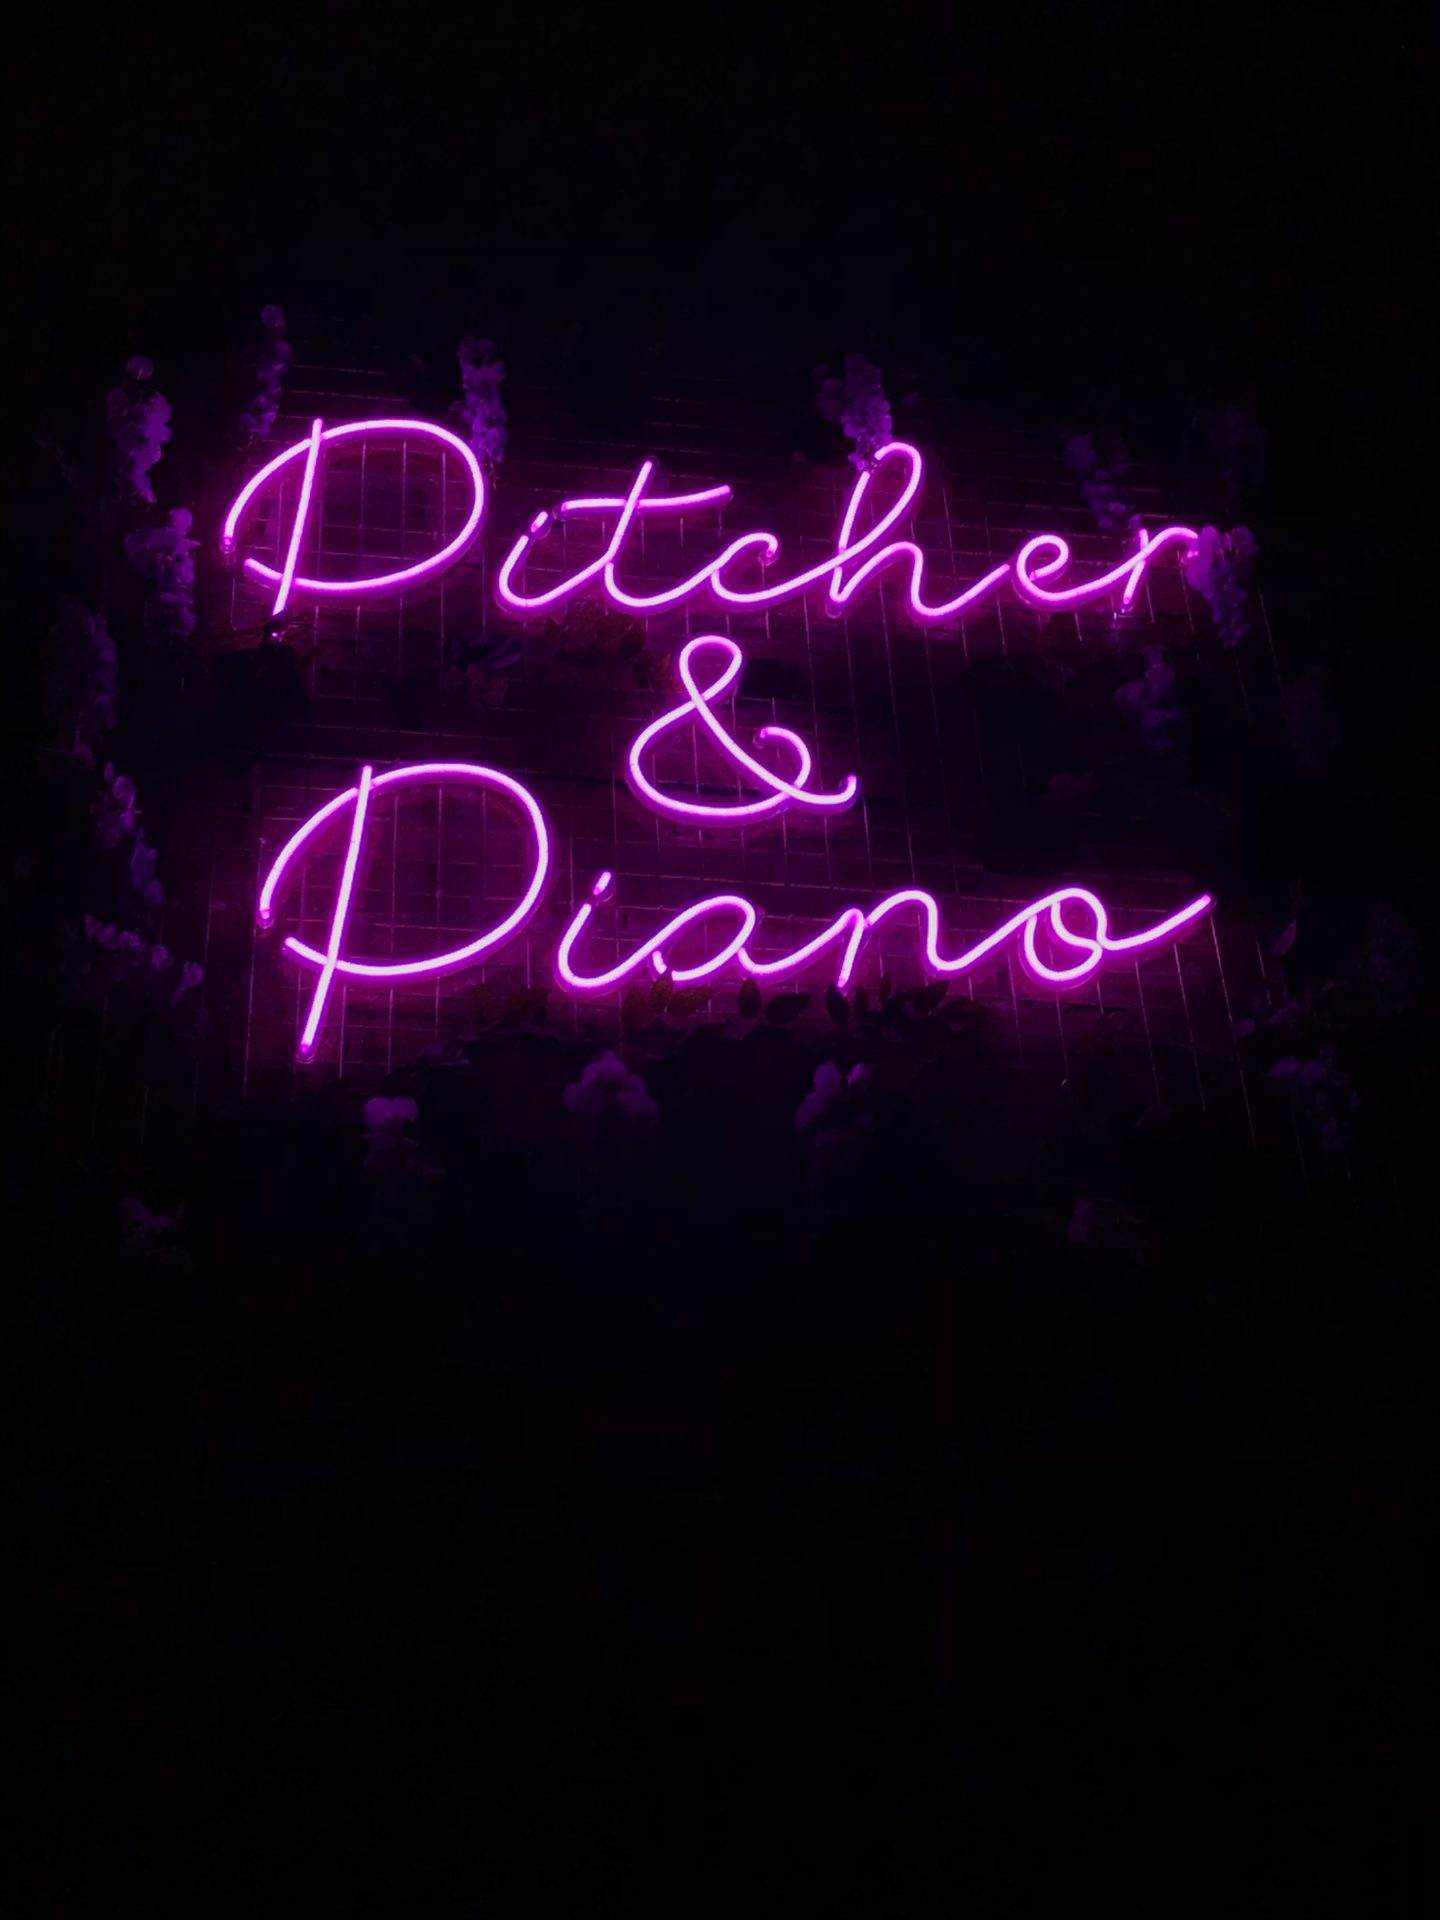 Say Hello to Pitcher & Piano